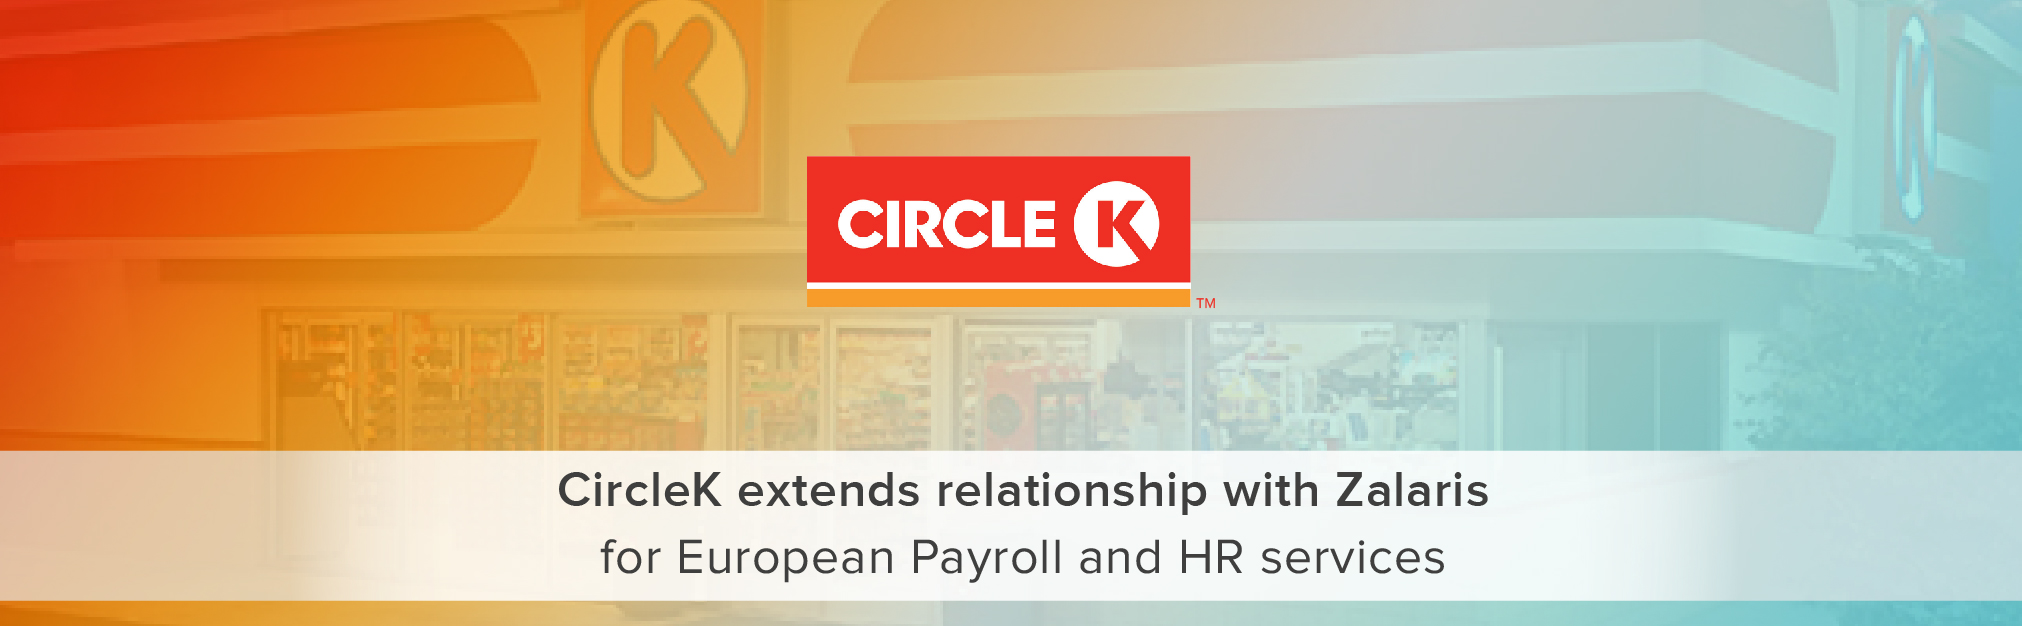 CircleK extends relationship with Zalaris for European Payroll and HR services